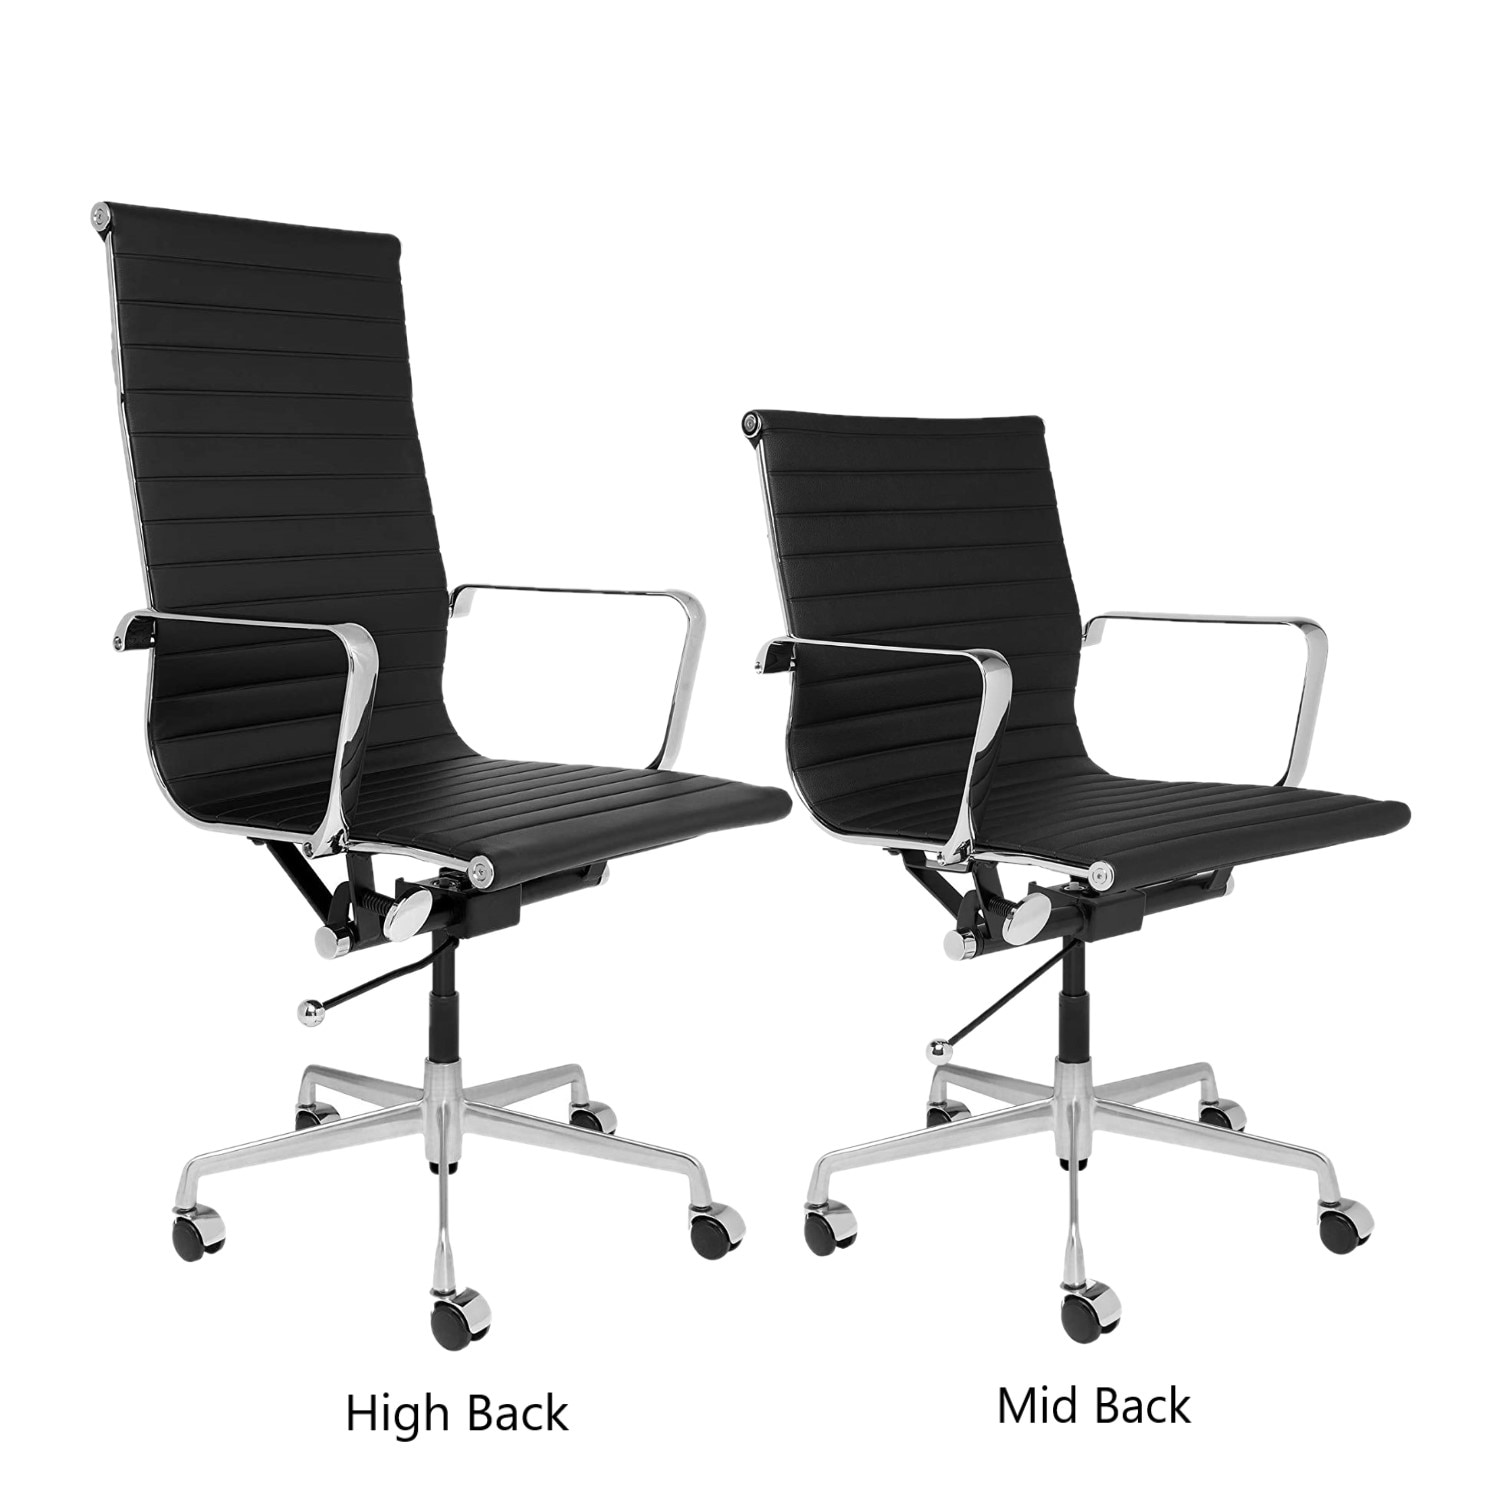 H5ea50d0e0b6f48278b9a1e23960467711 - High Back Aluminium Group Office Chair Replica Swivel Chair with Armrests Chromed Base Gaming Chair for Office Meeting Room